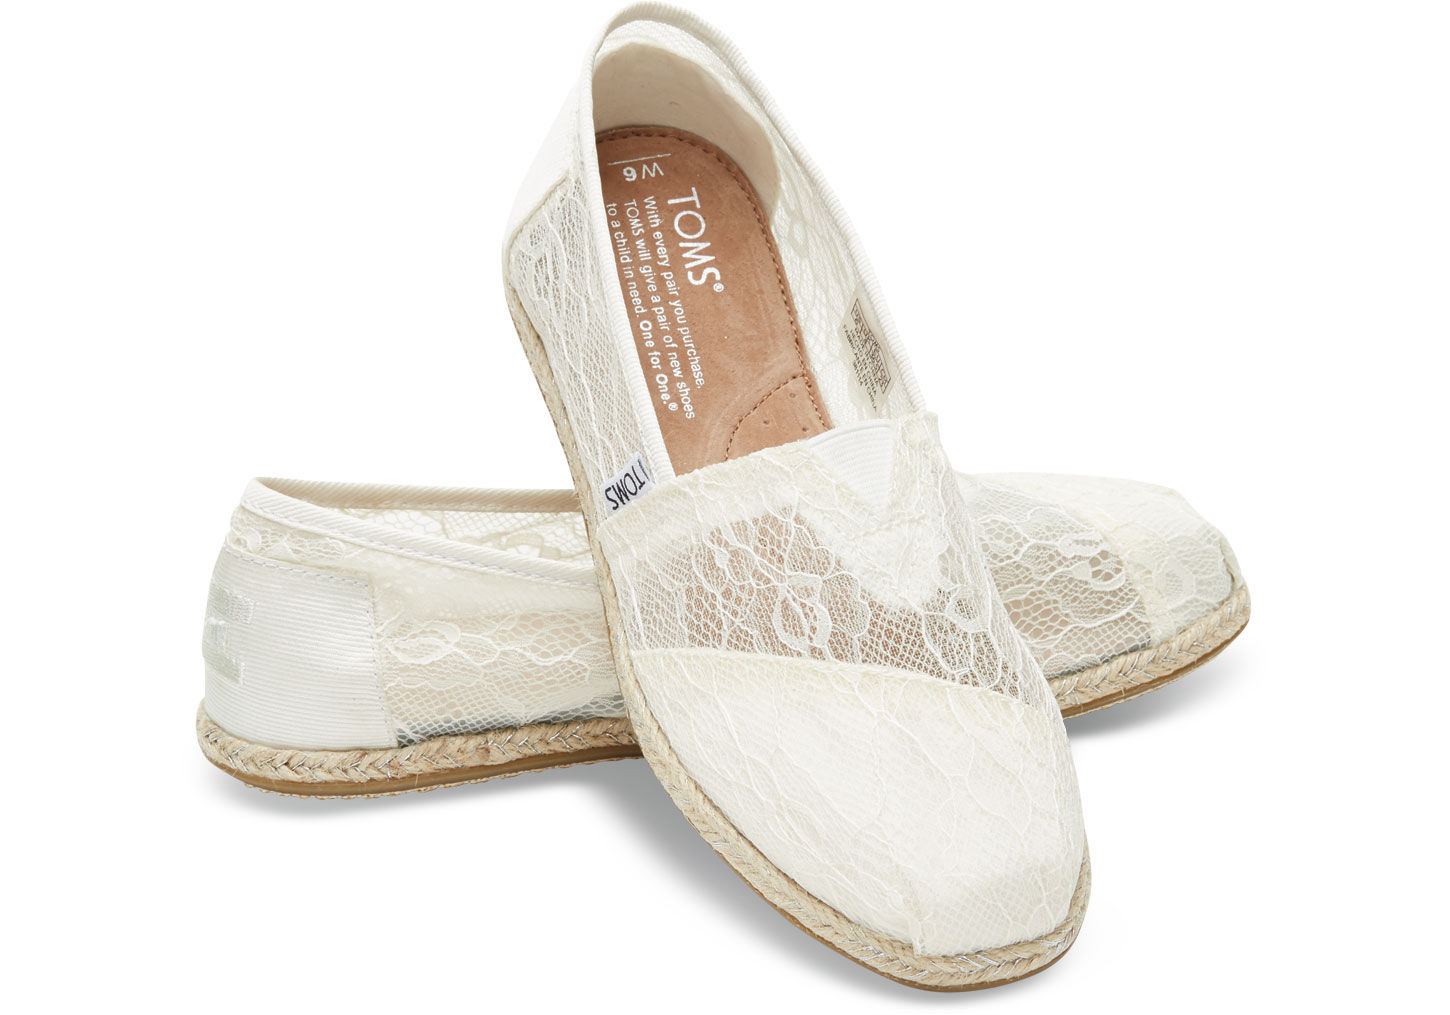 These TOMS Mint Blue Lace slip-ons are often referred to as Wedding Shoes. TOMS Kids' Alpargata-K. by TOMS. $ - $ $ 17 $ 51 65 Prime. FREE Shipping on eligible orders. Some sizes/colors are Prime eligible. 4 out of 5 stars